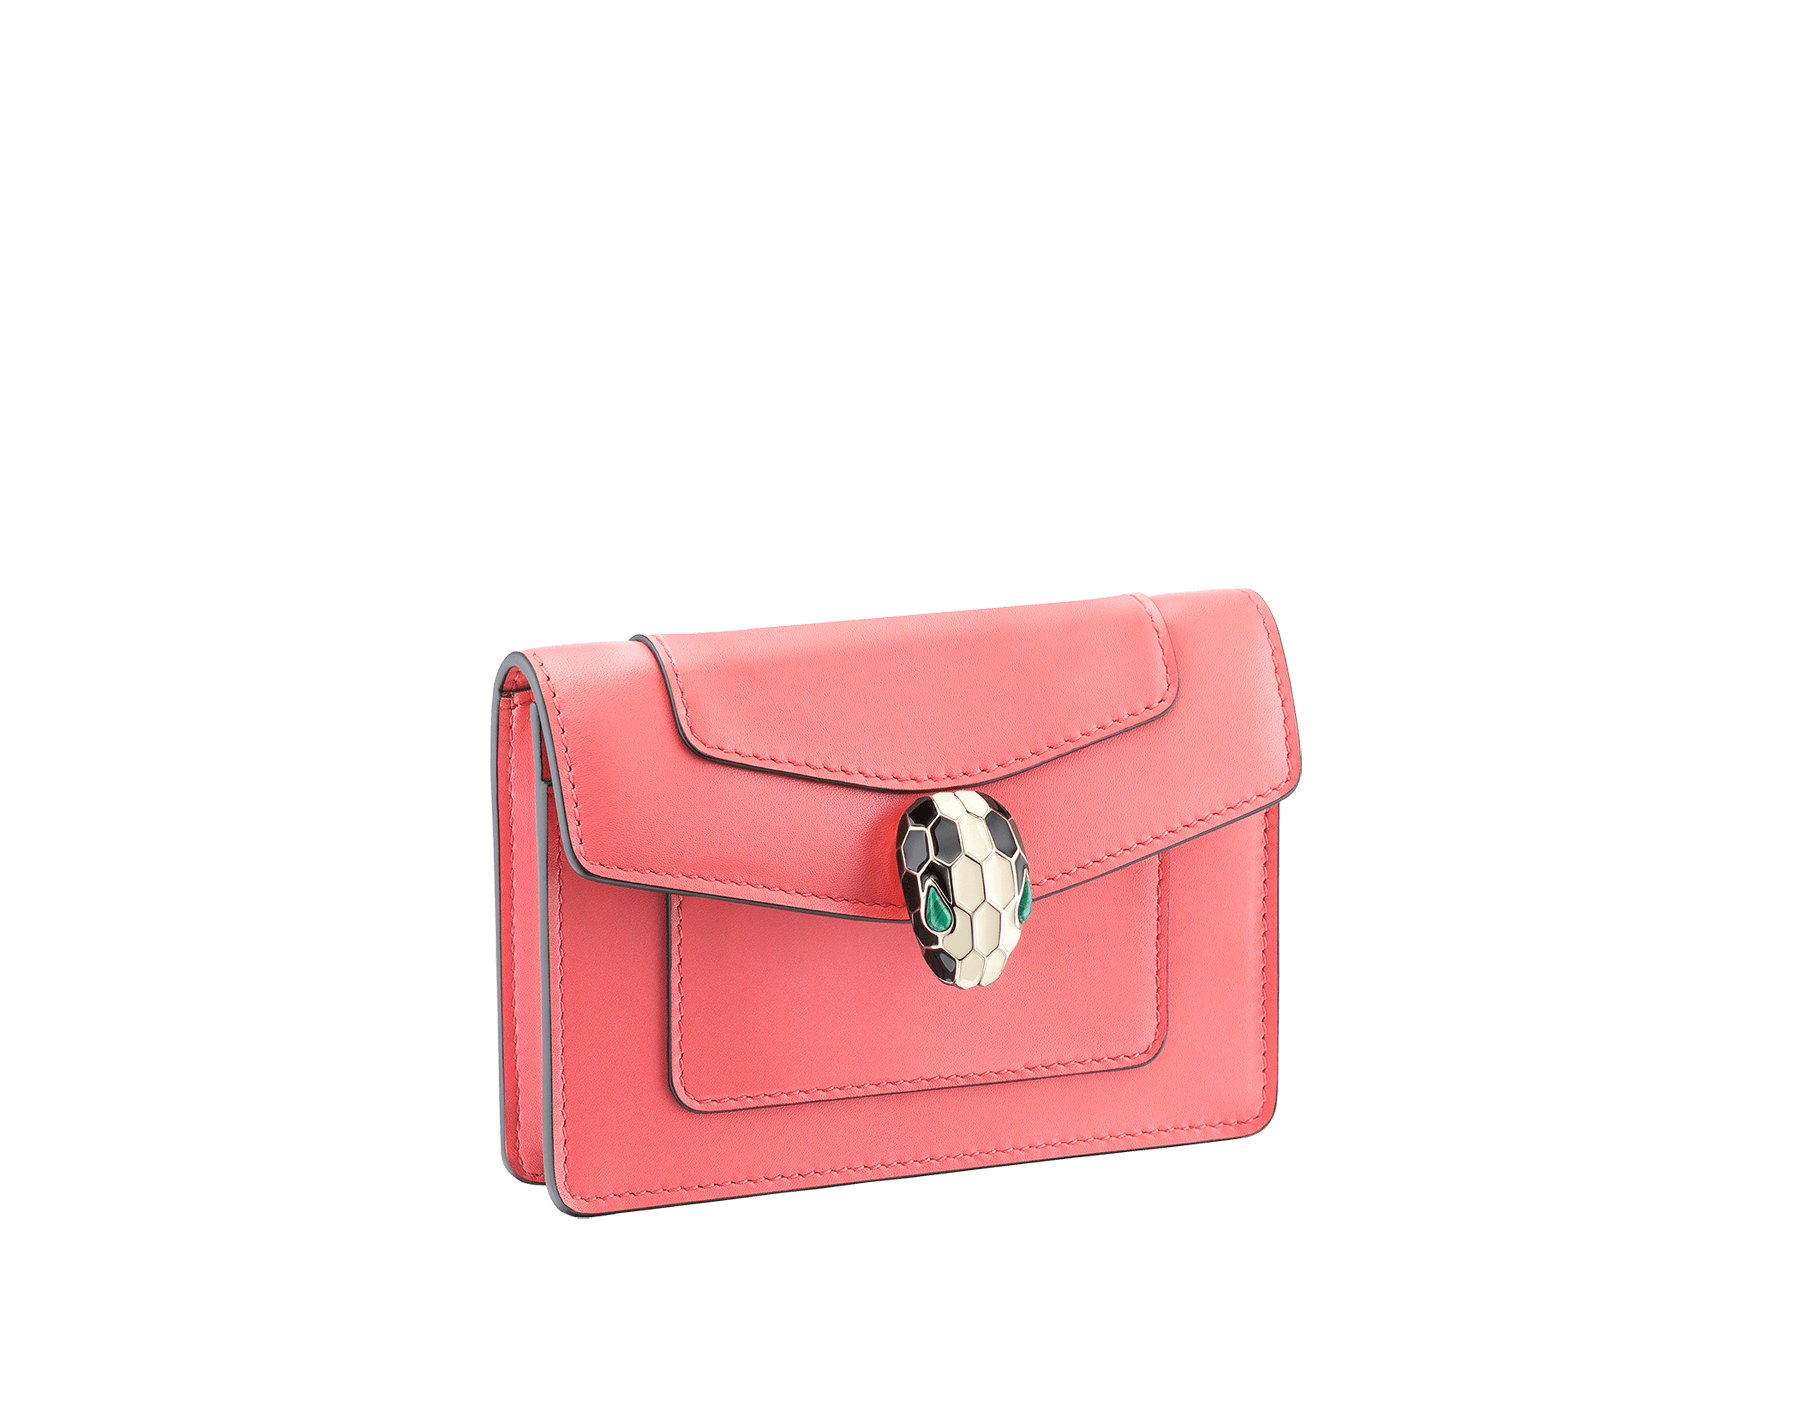 Serpenti Forever pocket credit card holder crafted silky coral and flamingo quartz calf leather, with flamingo quartz nappa lining. Iconic brass light gold plated snakehead stud closure in black and white enamel, with eyes in green malachite 289009 image 1